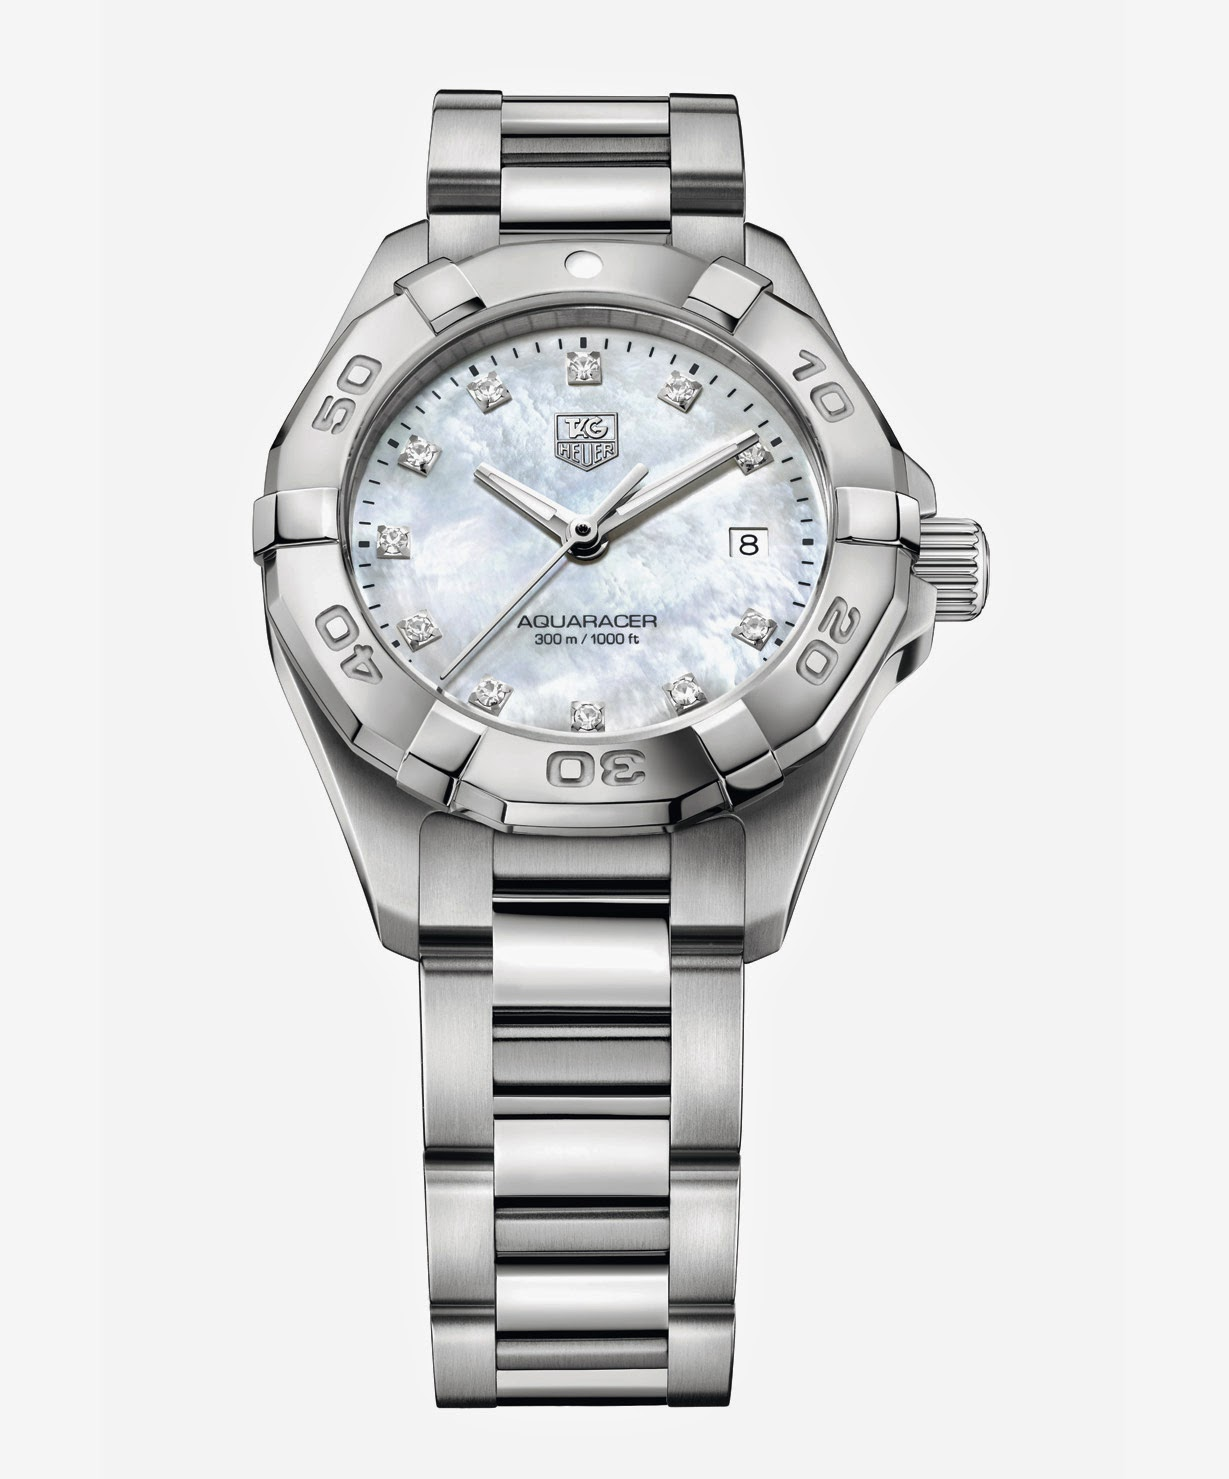 Tag heuer aquaracer lady 2014 time and watches for The tag heuer aquaracer